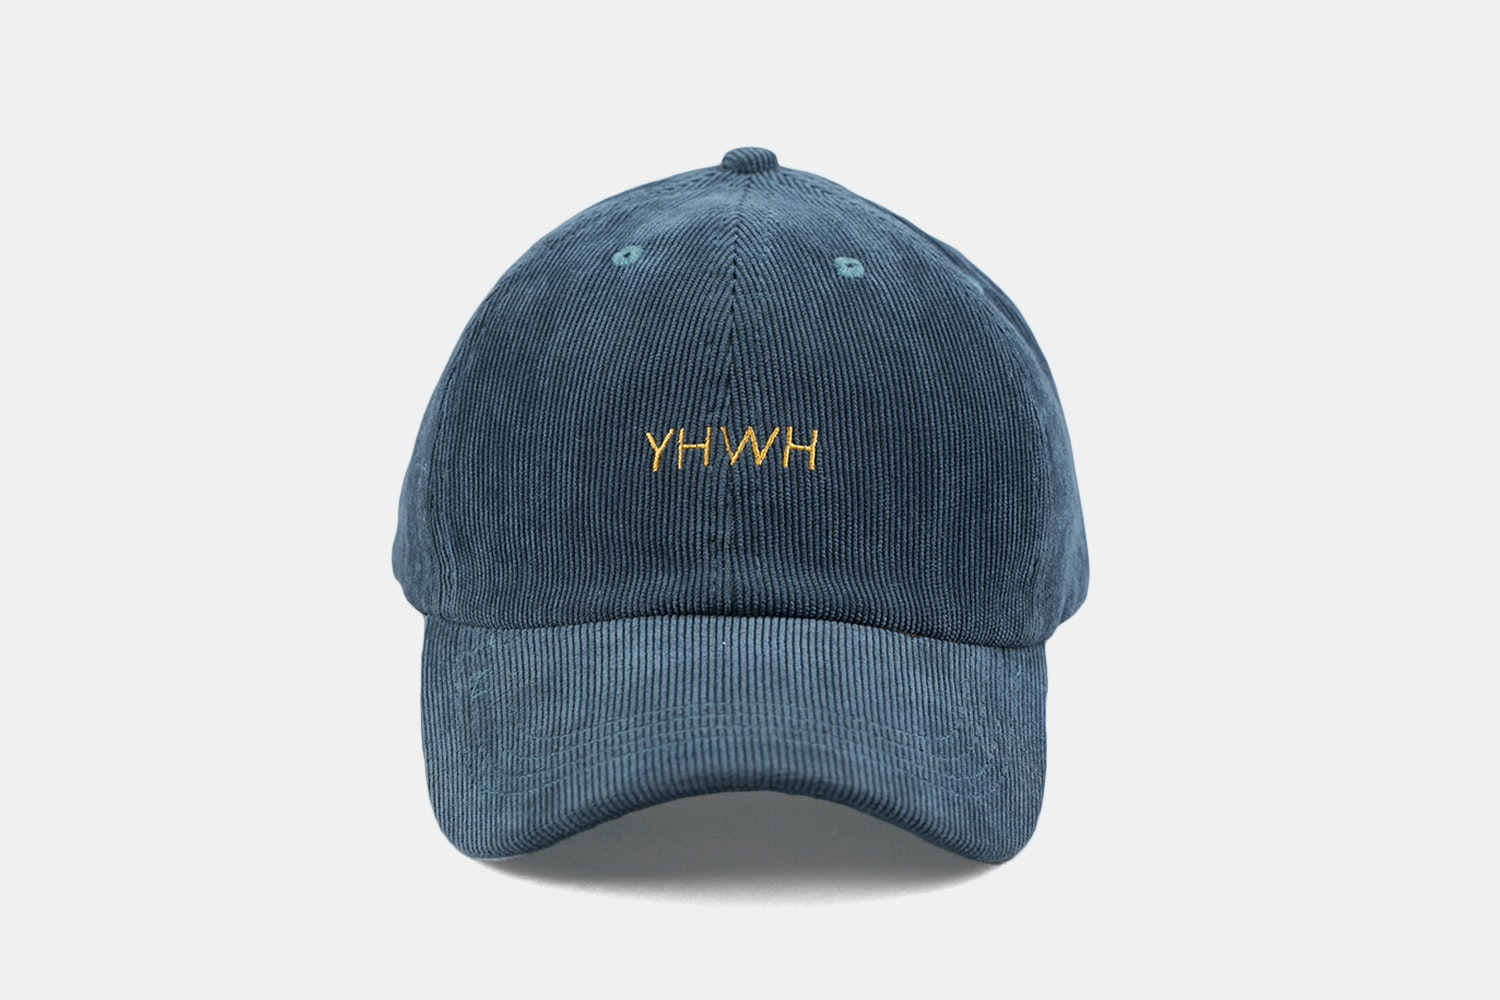 Yahweh Cap - Waters